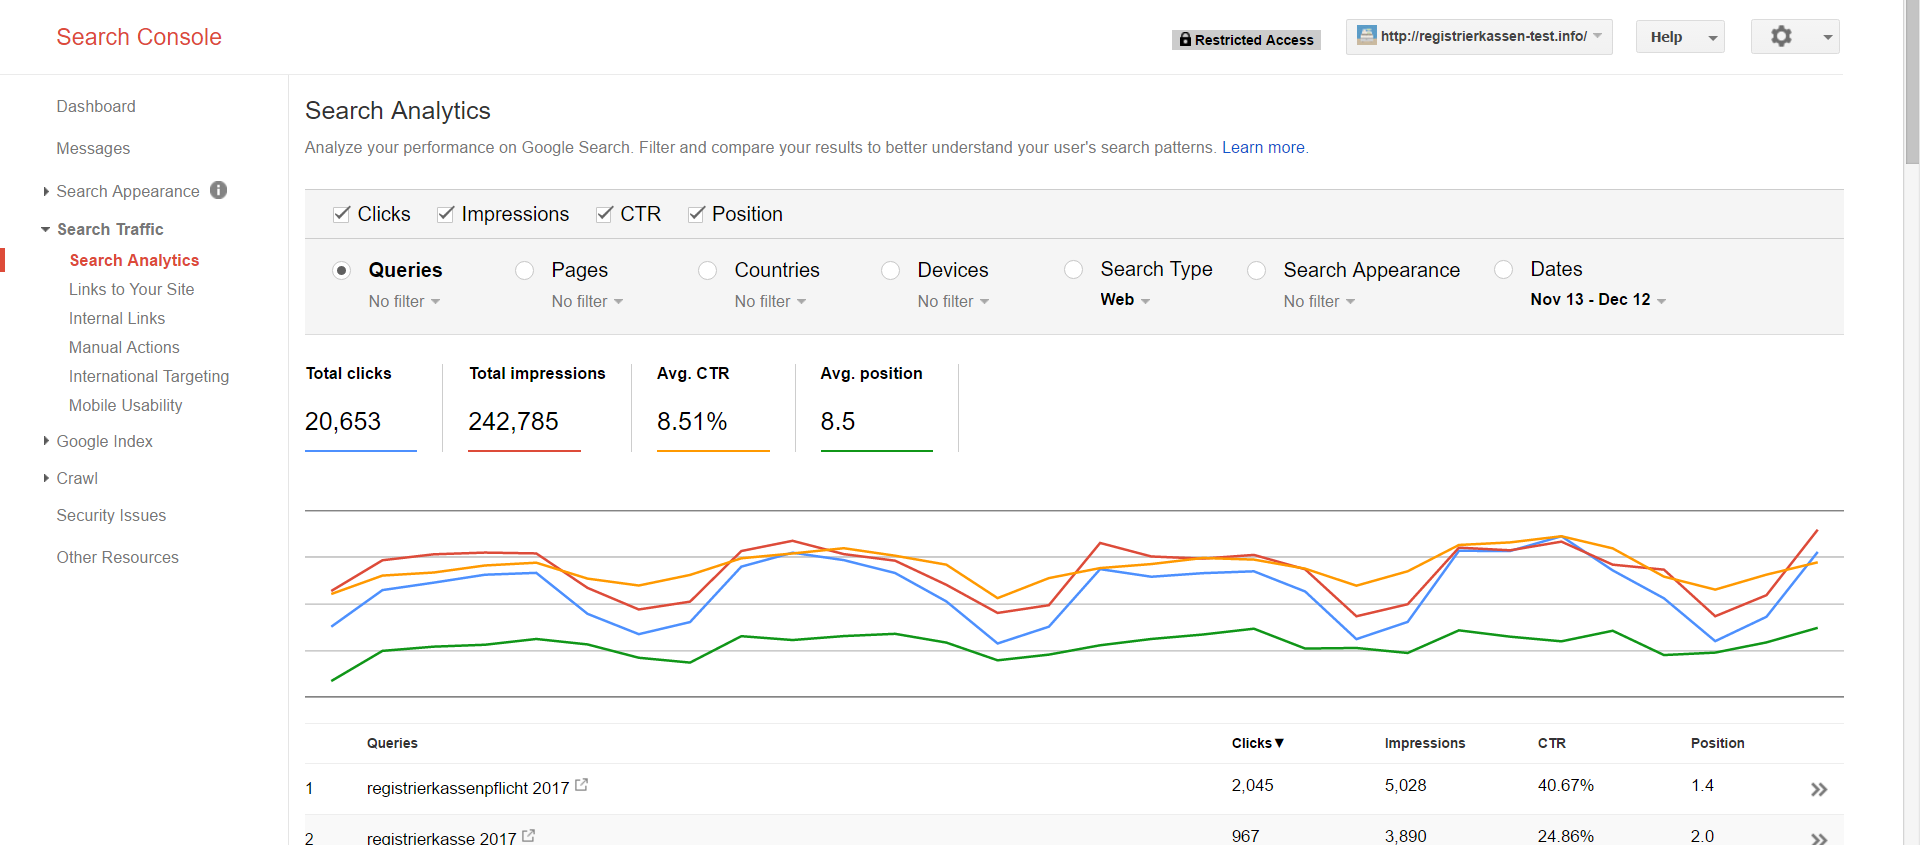 Google Search Console Review: 1000 rows limit